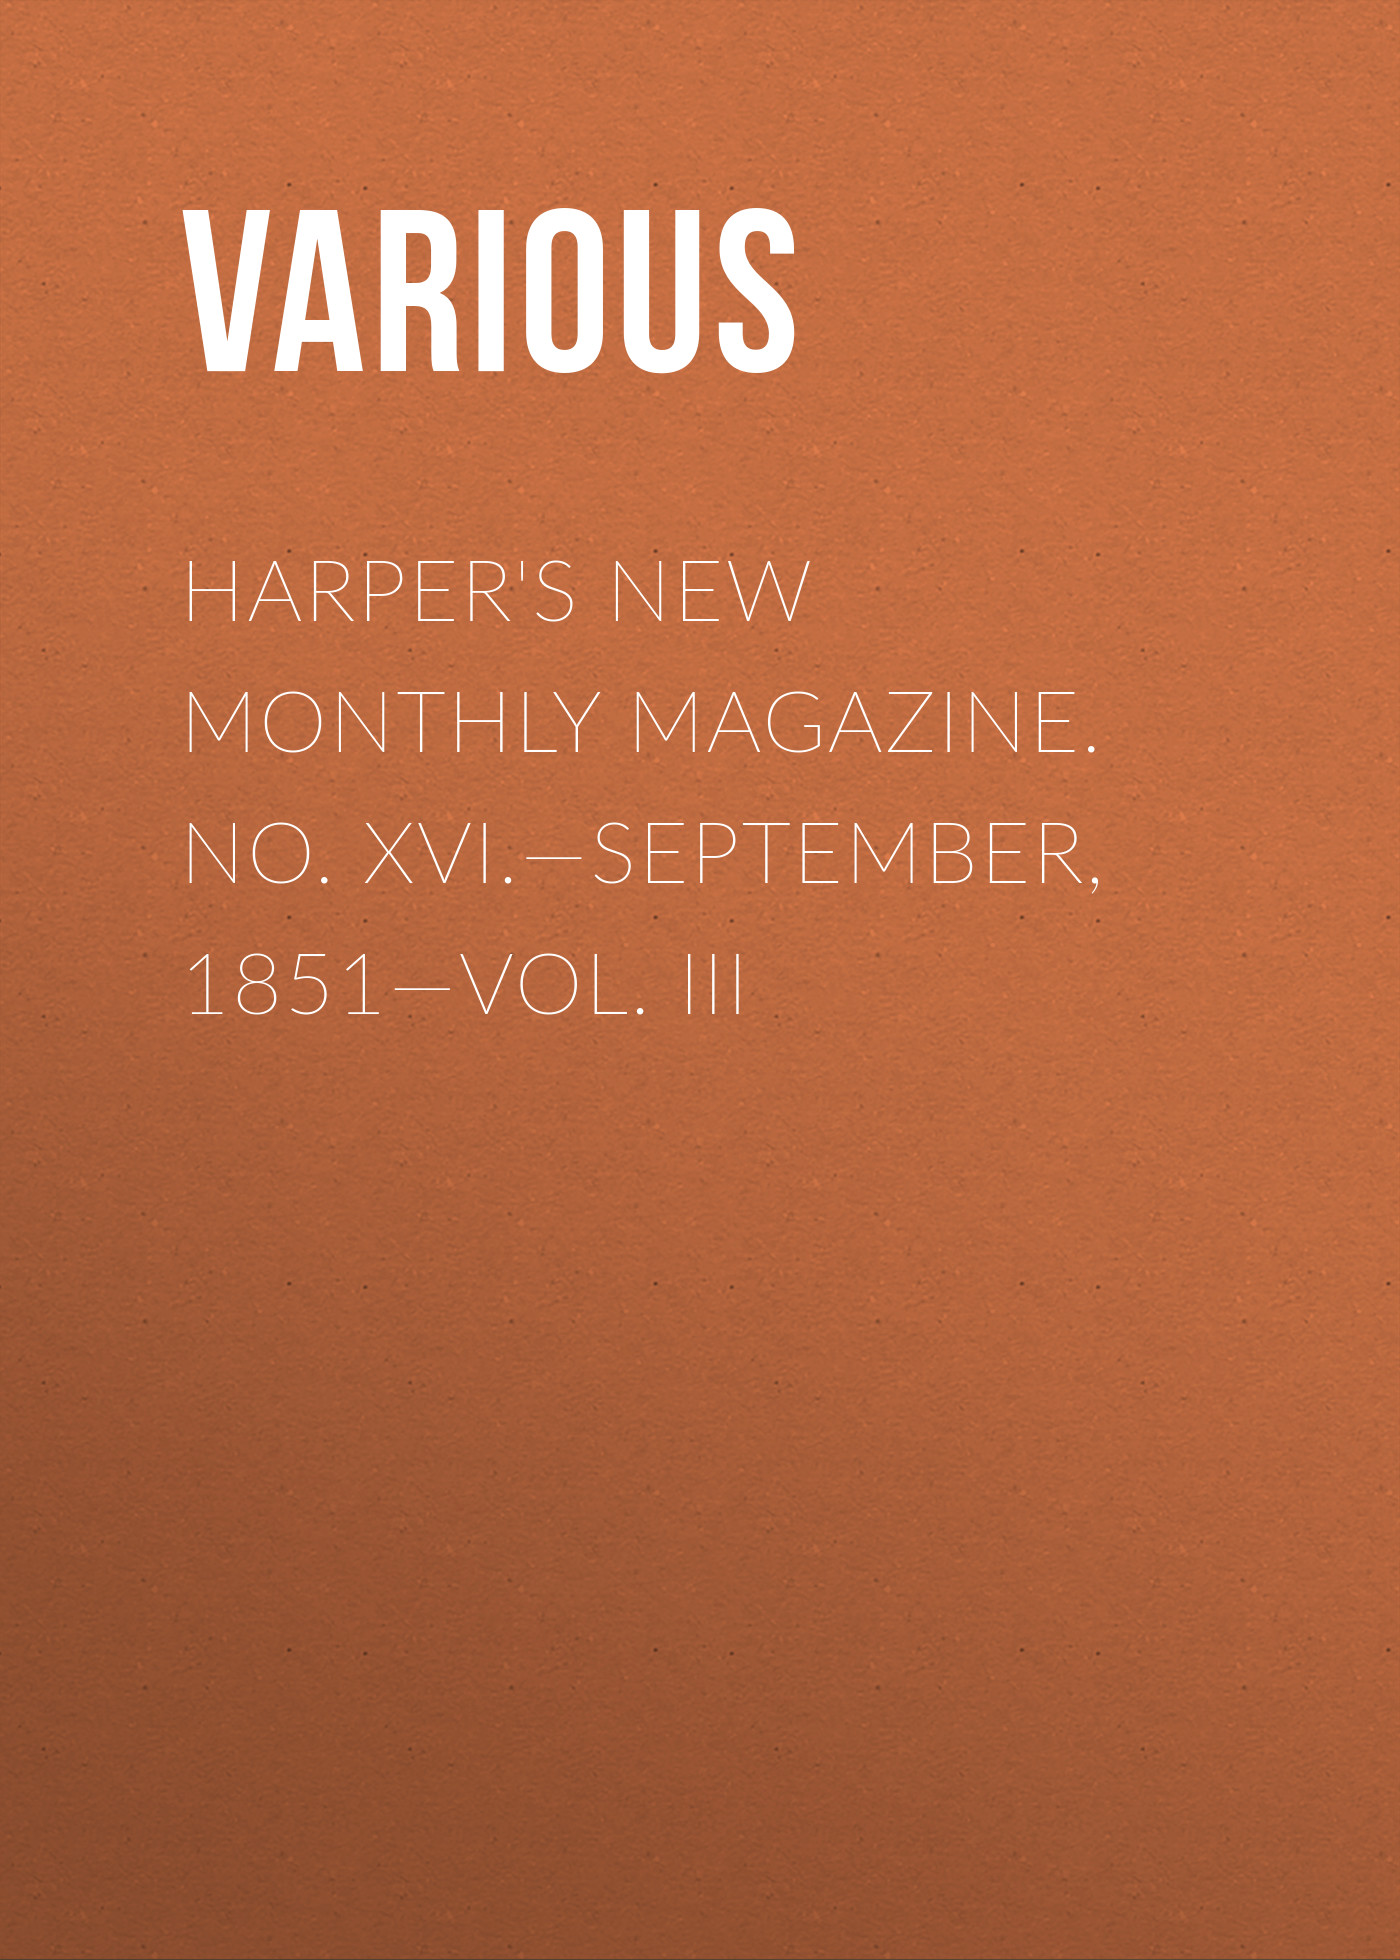 Various Harper's New Monthly Magazine. No. XVI.—September, 1851—Vol. III